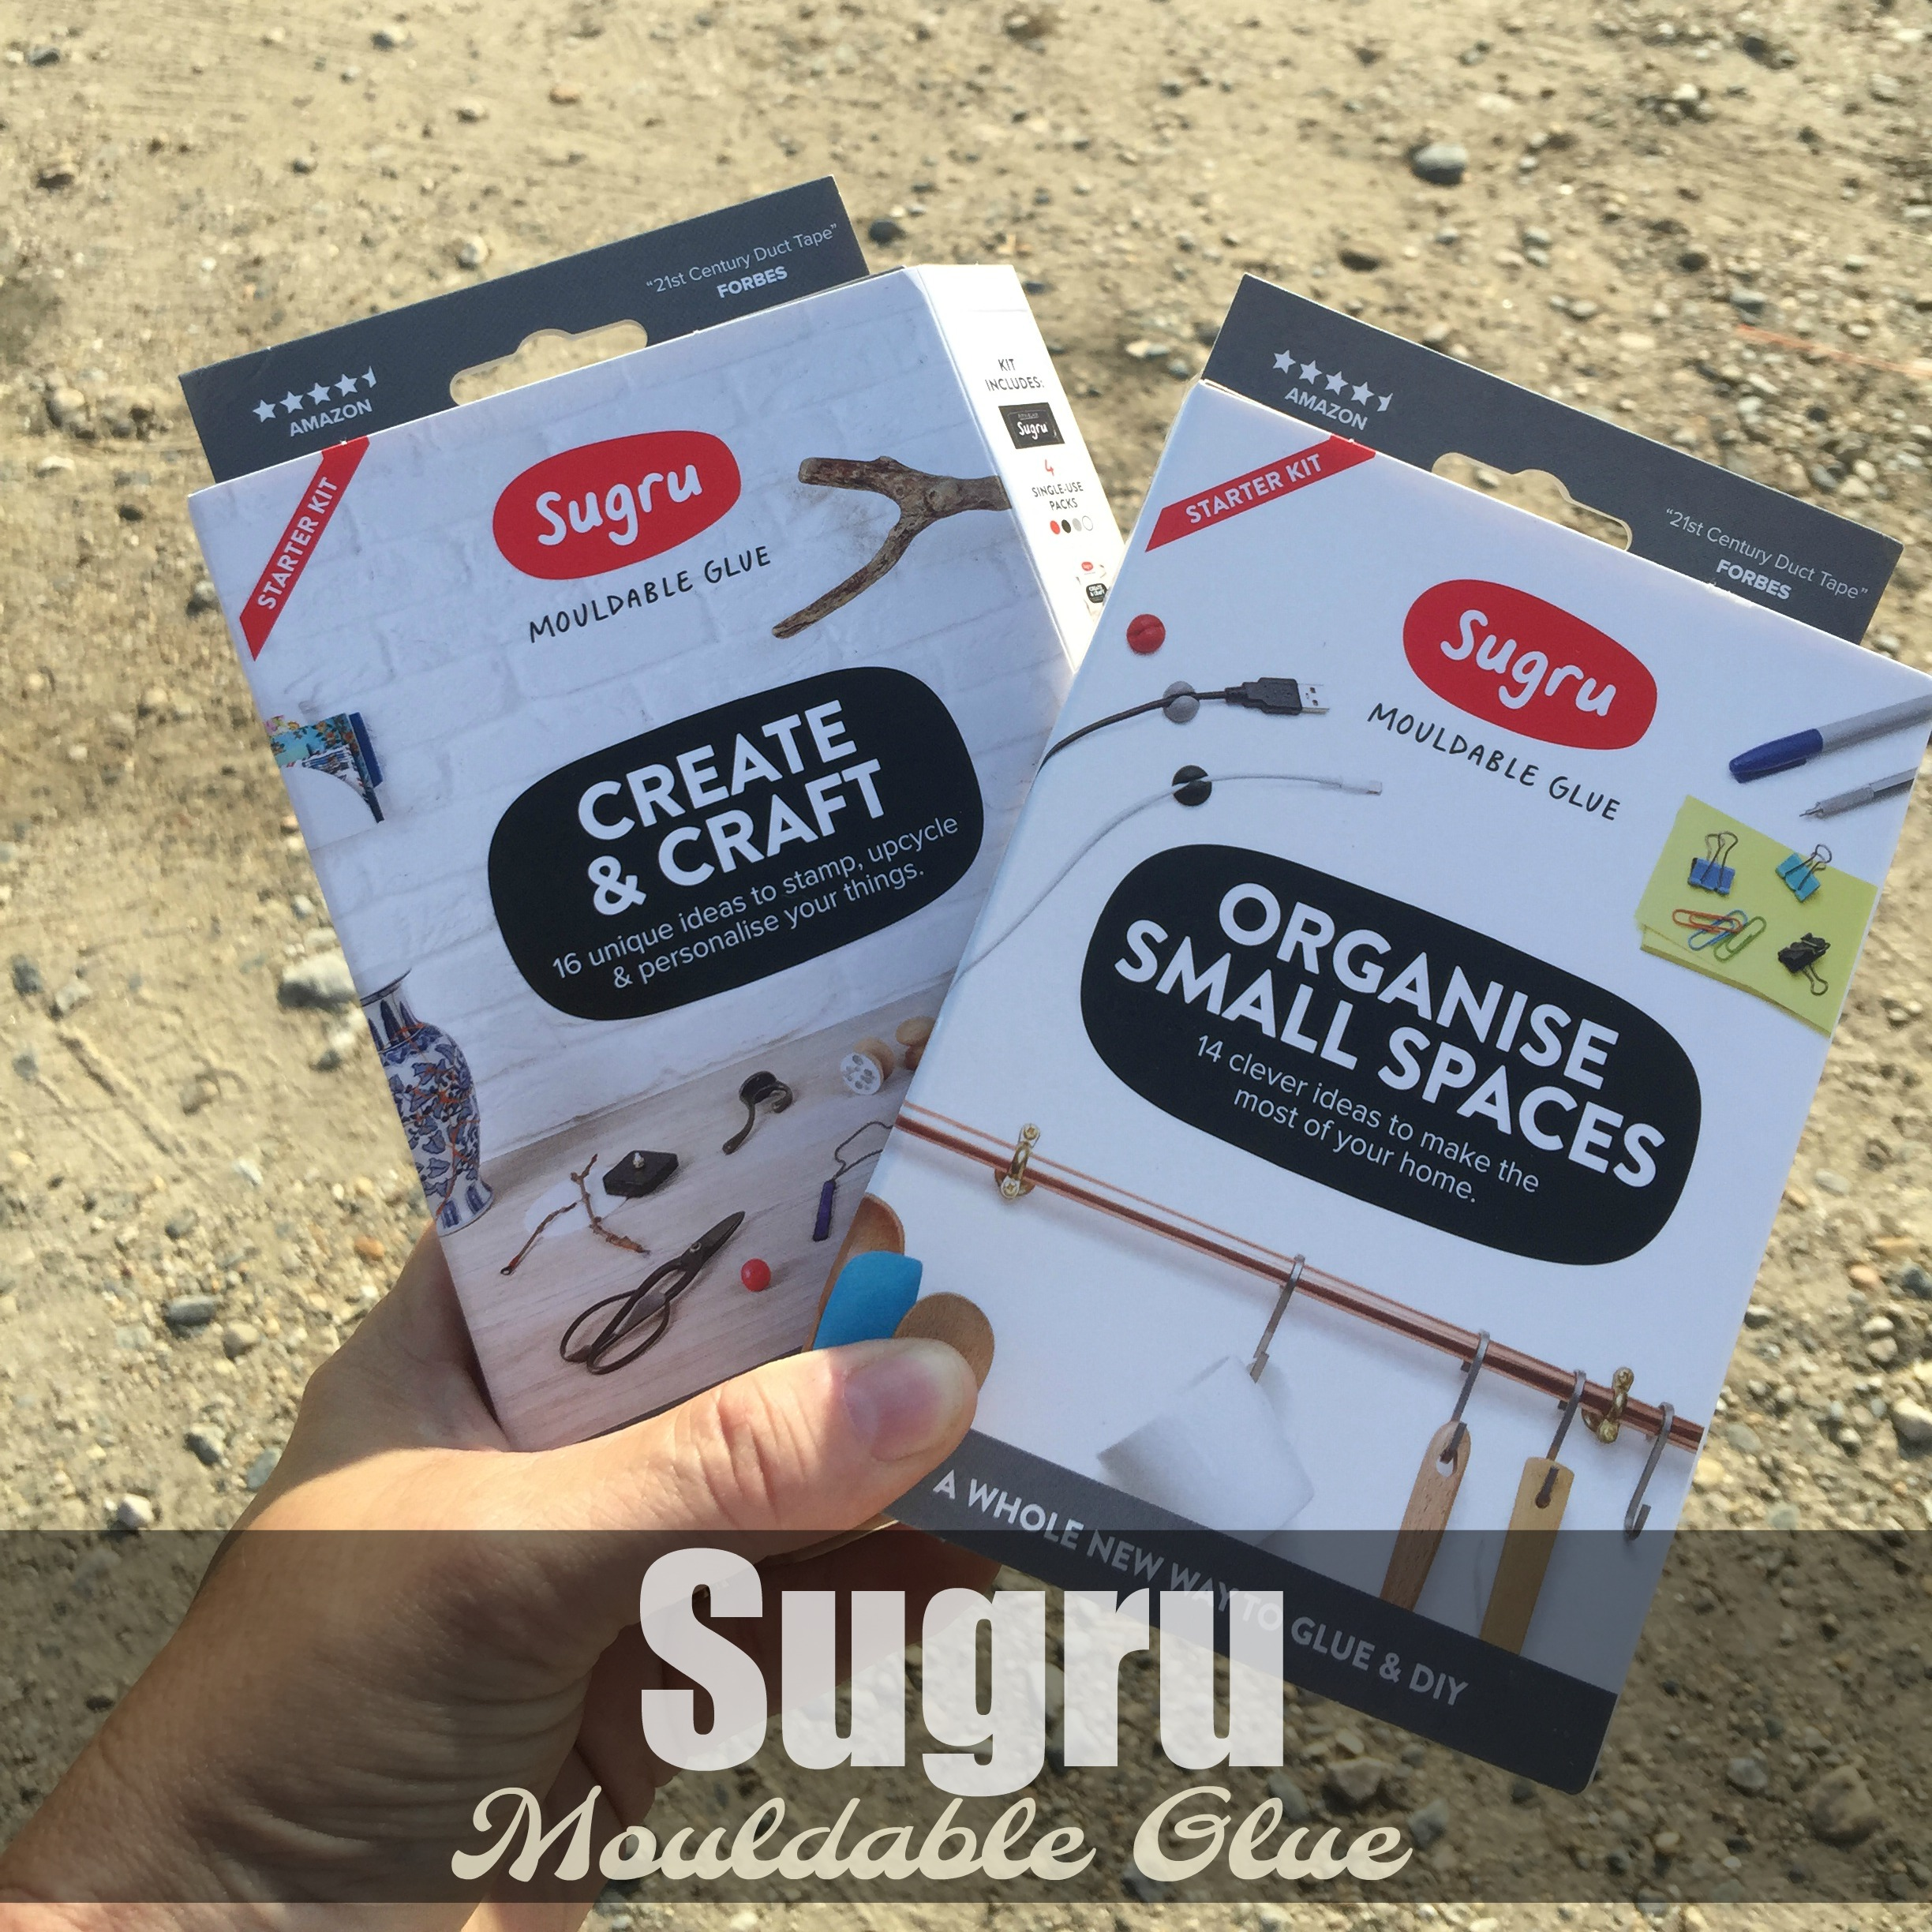 Sugru Mouldable Glue Is A Really Cool And Amazing Product You Can Do Crafts With It Create Stuff Modify Personalize And Repair